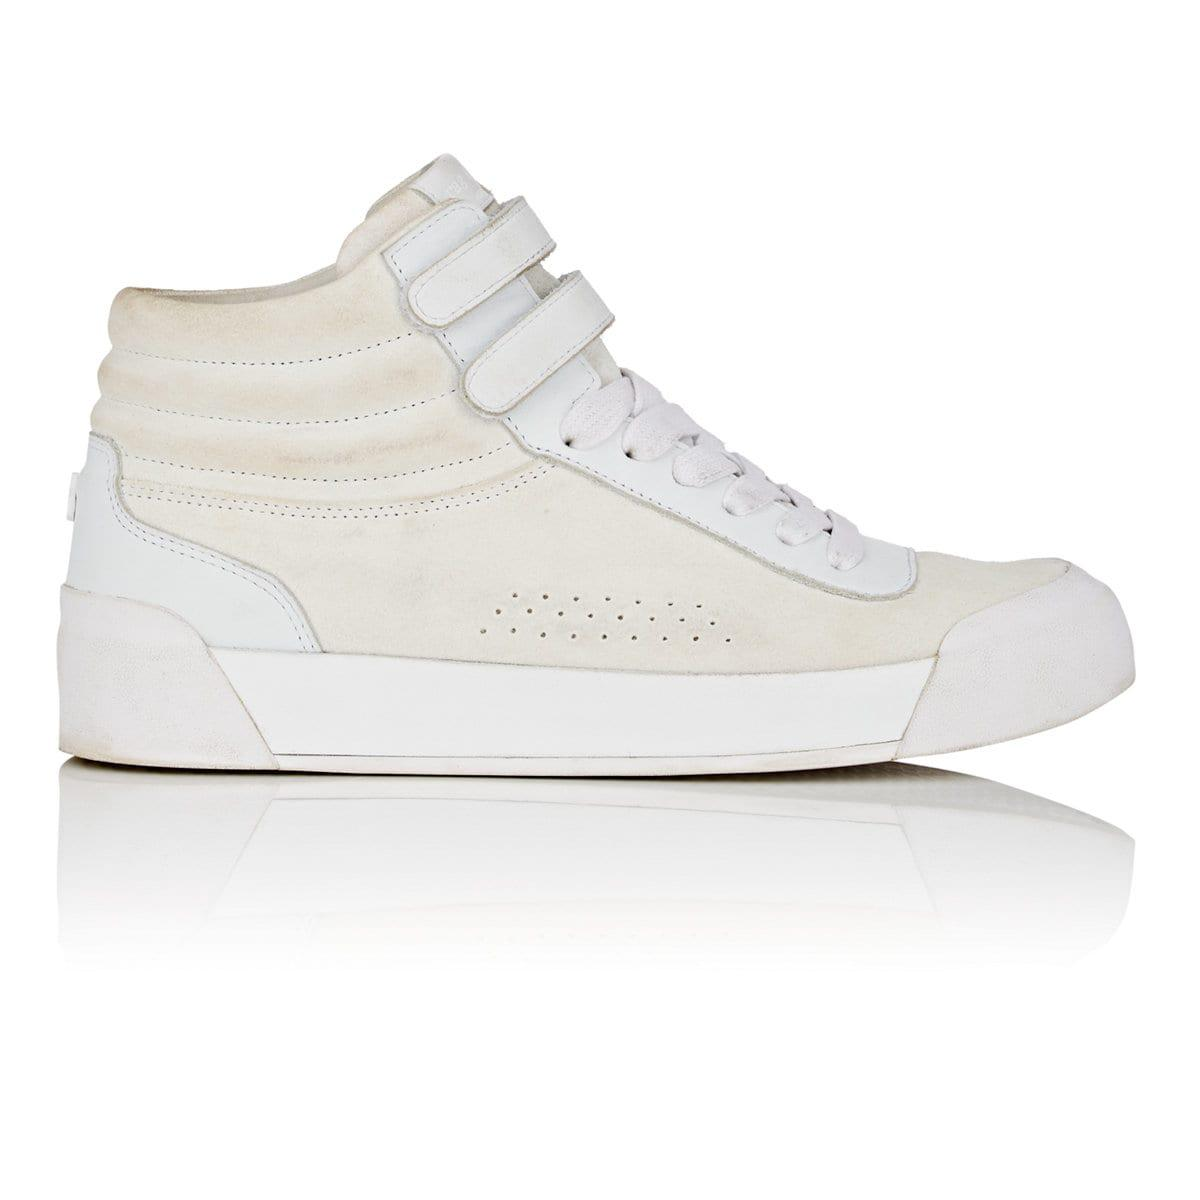 Rag & Bone Nova Suede & Leather Sneakers outlet order online cheap footlocker pictures free shipping latest collections buy cheap under $60 sale deals 2If2LsNbw